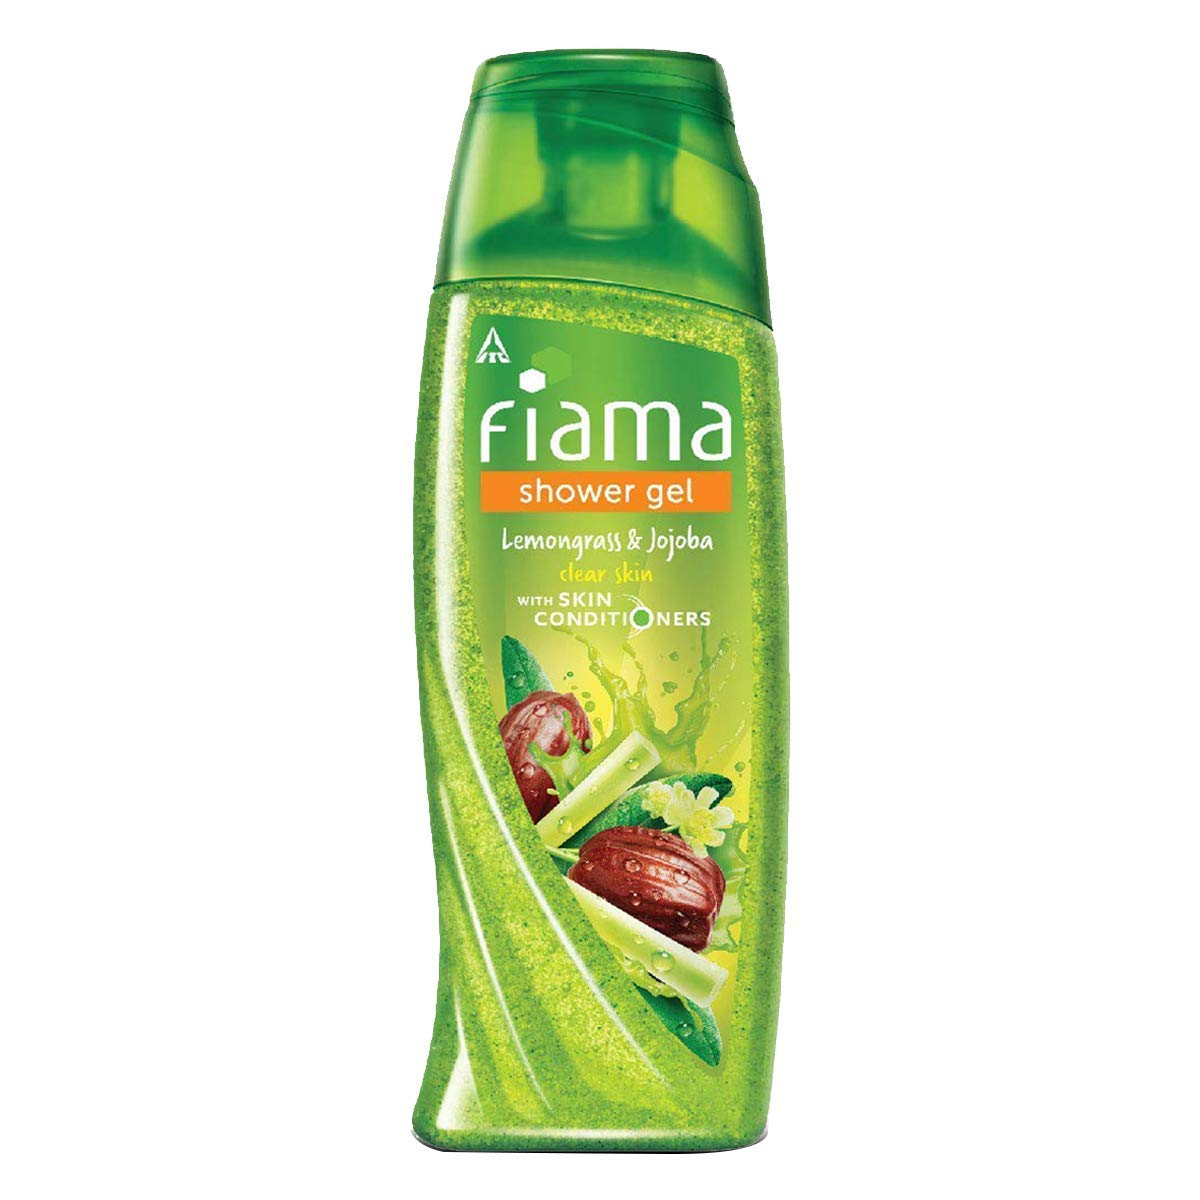 Fiama Lemongrass & Jojoba, Shower Gel